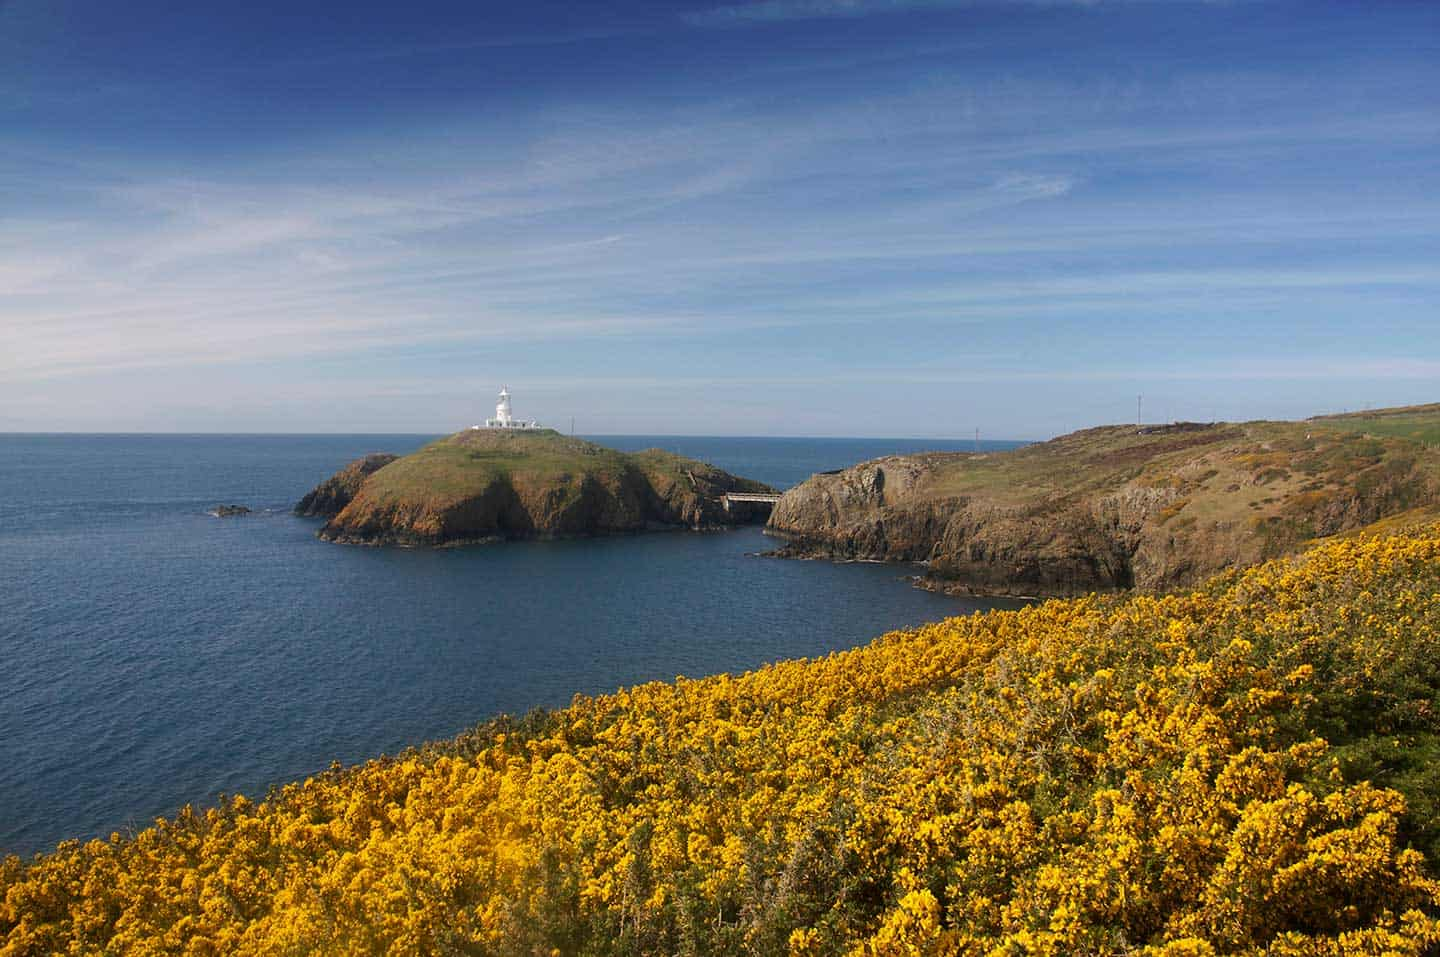 Image of Strumble Head lighthouse, Pembrokeshire, Wales